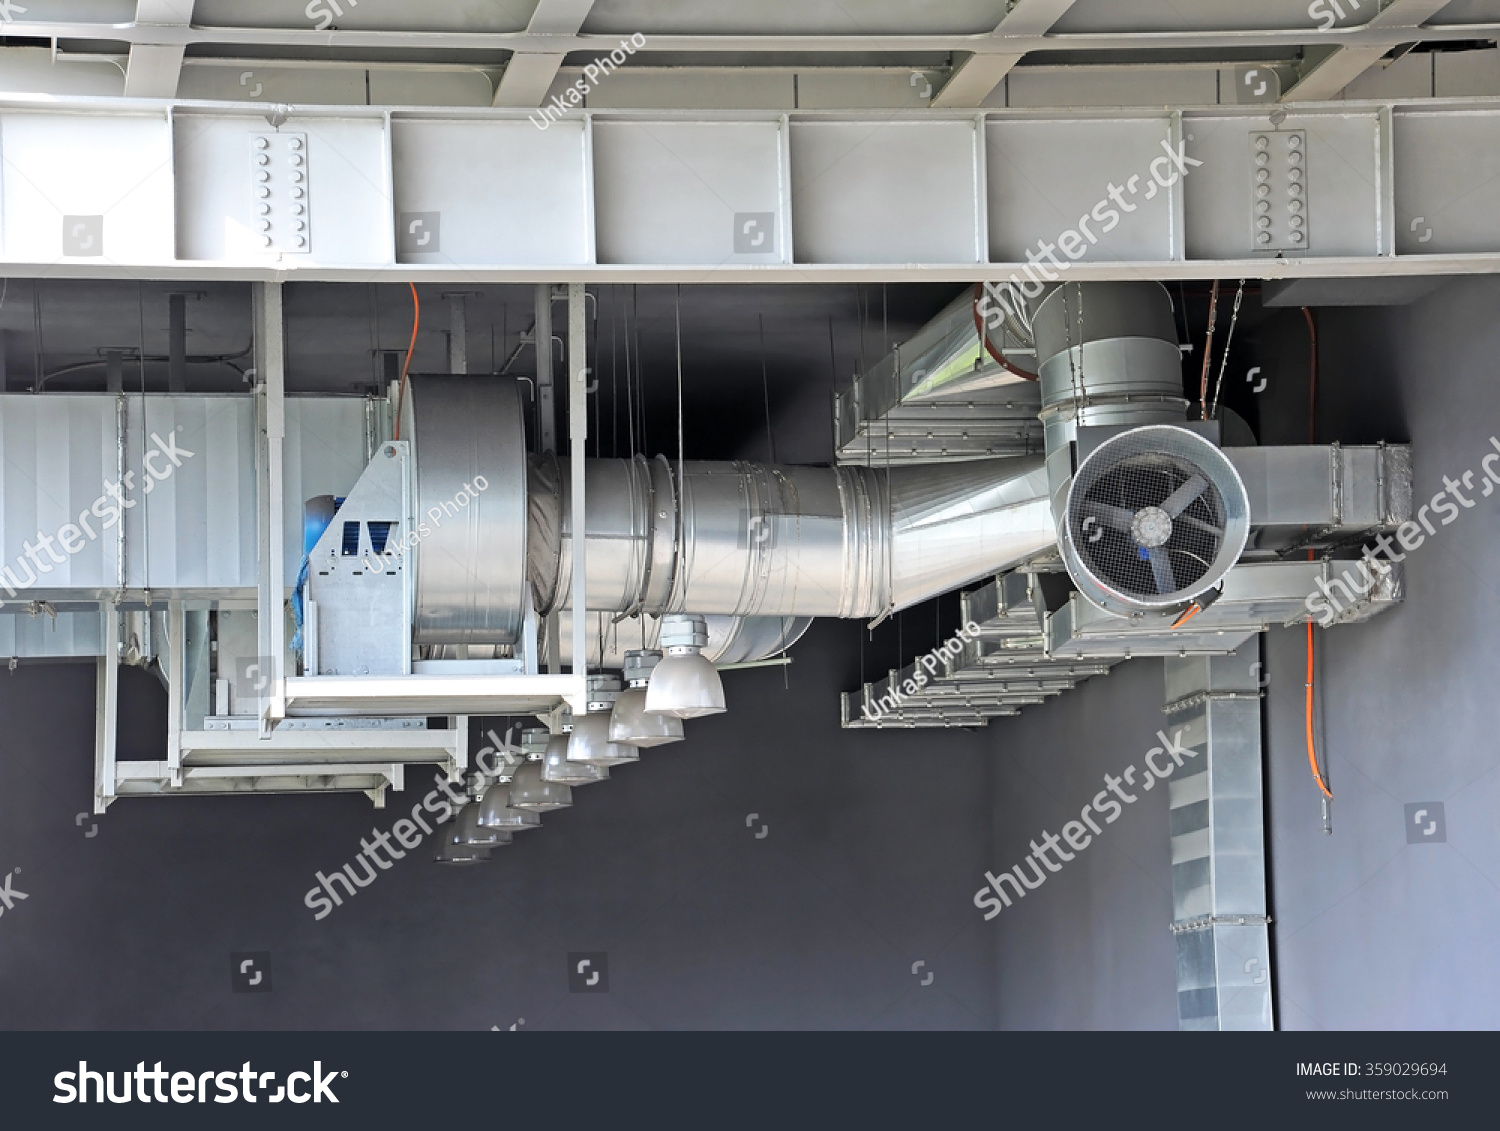 Industrial Exhaust Ventilation Systems : Industrial air conditioning ventilation systems under